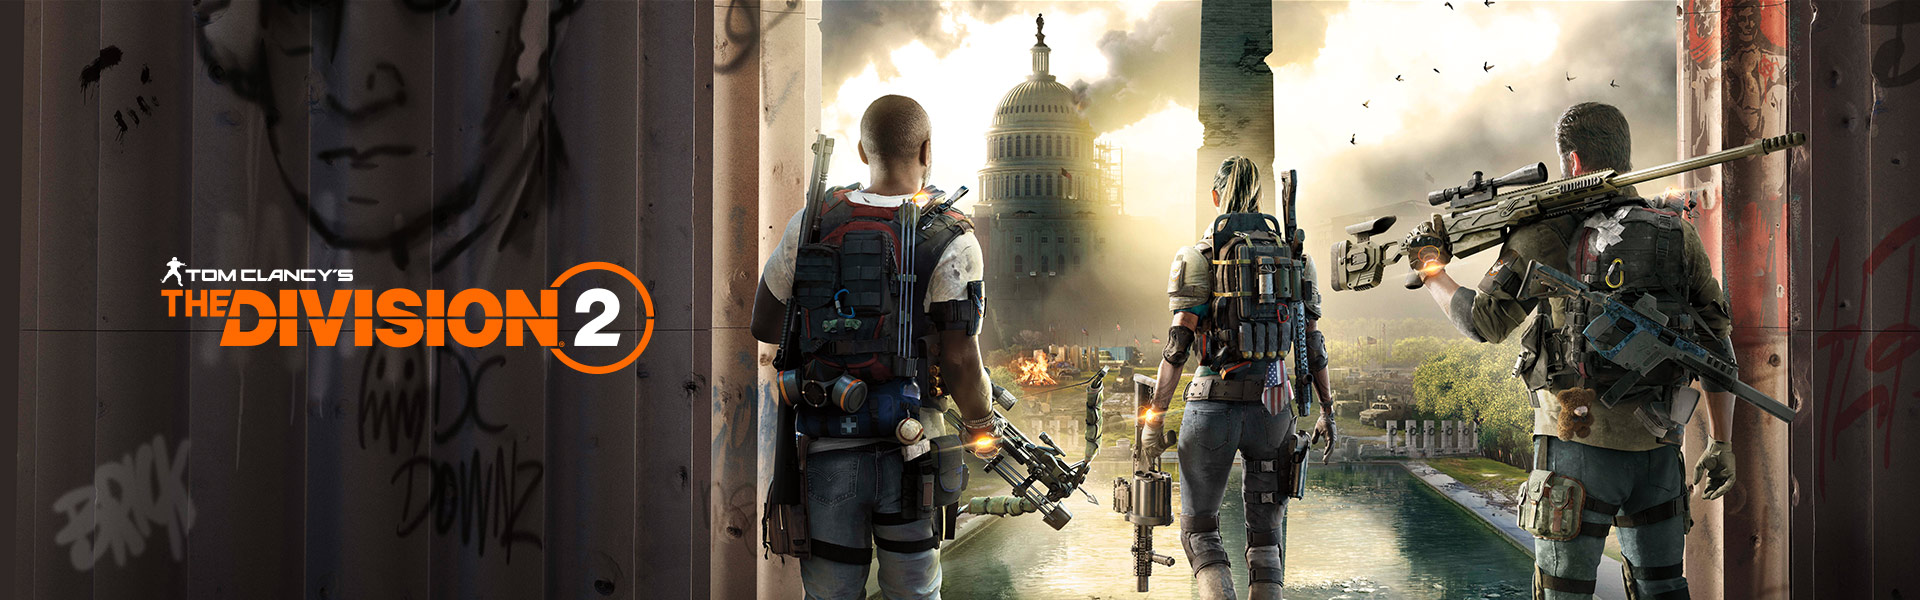 Tom Clancy's The Division 2, three heavily-geared people look out over a ravaged Washington D.C.